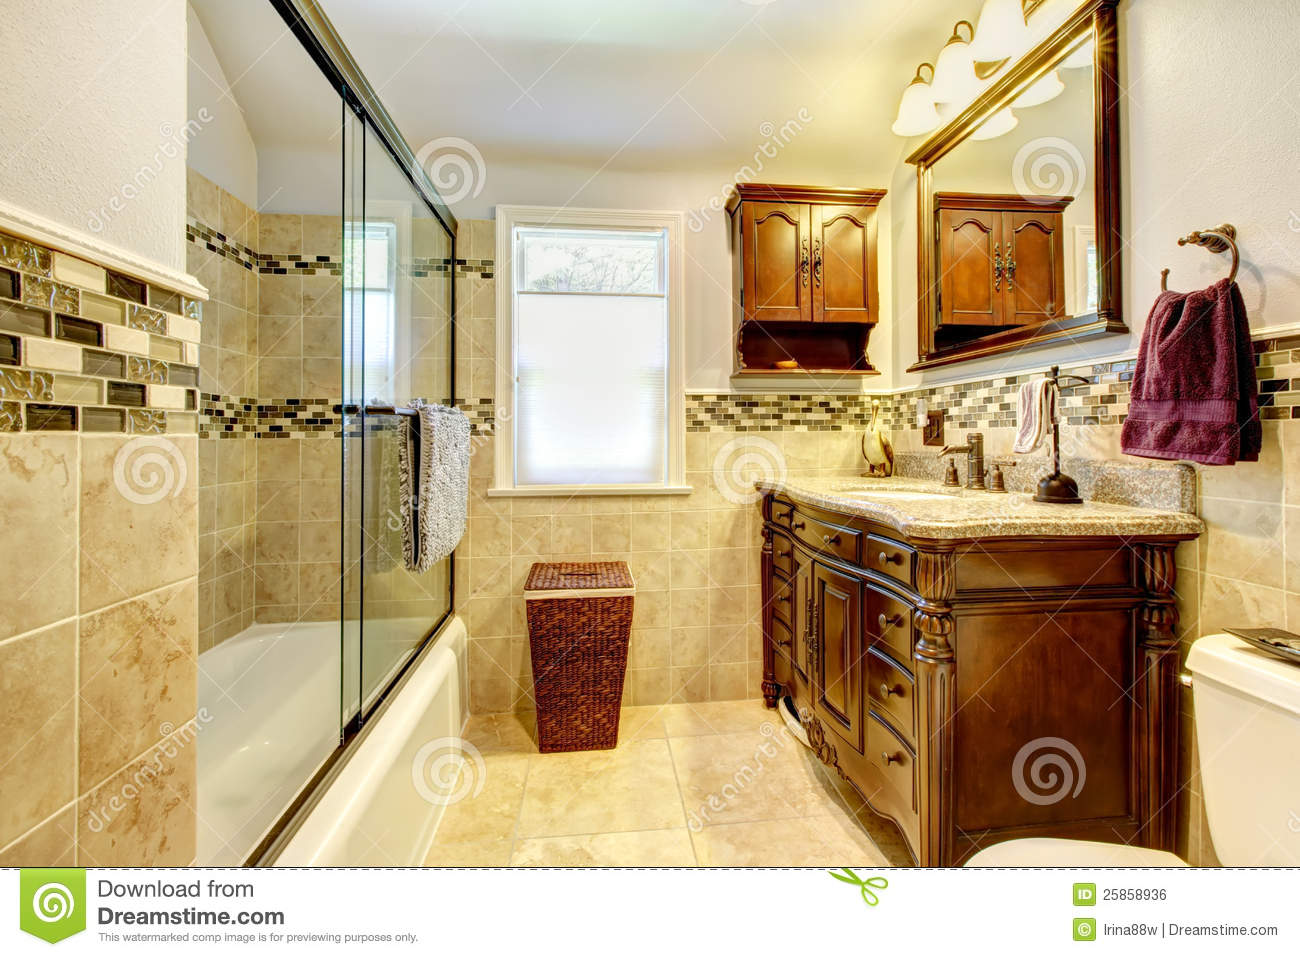 Cabina De Baño Con Tina:Bathroom with Natural Wood and Stone